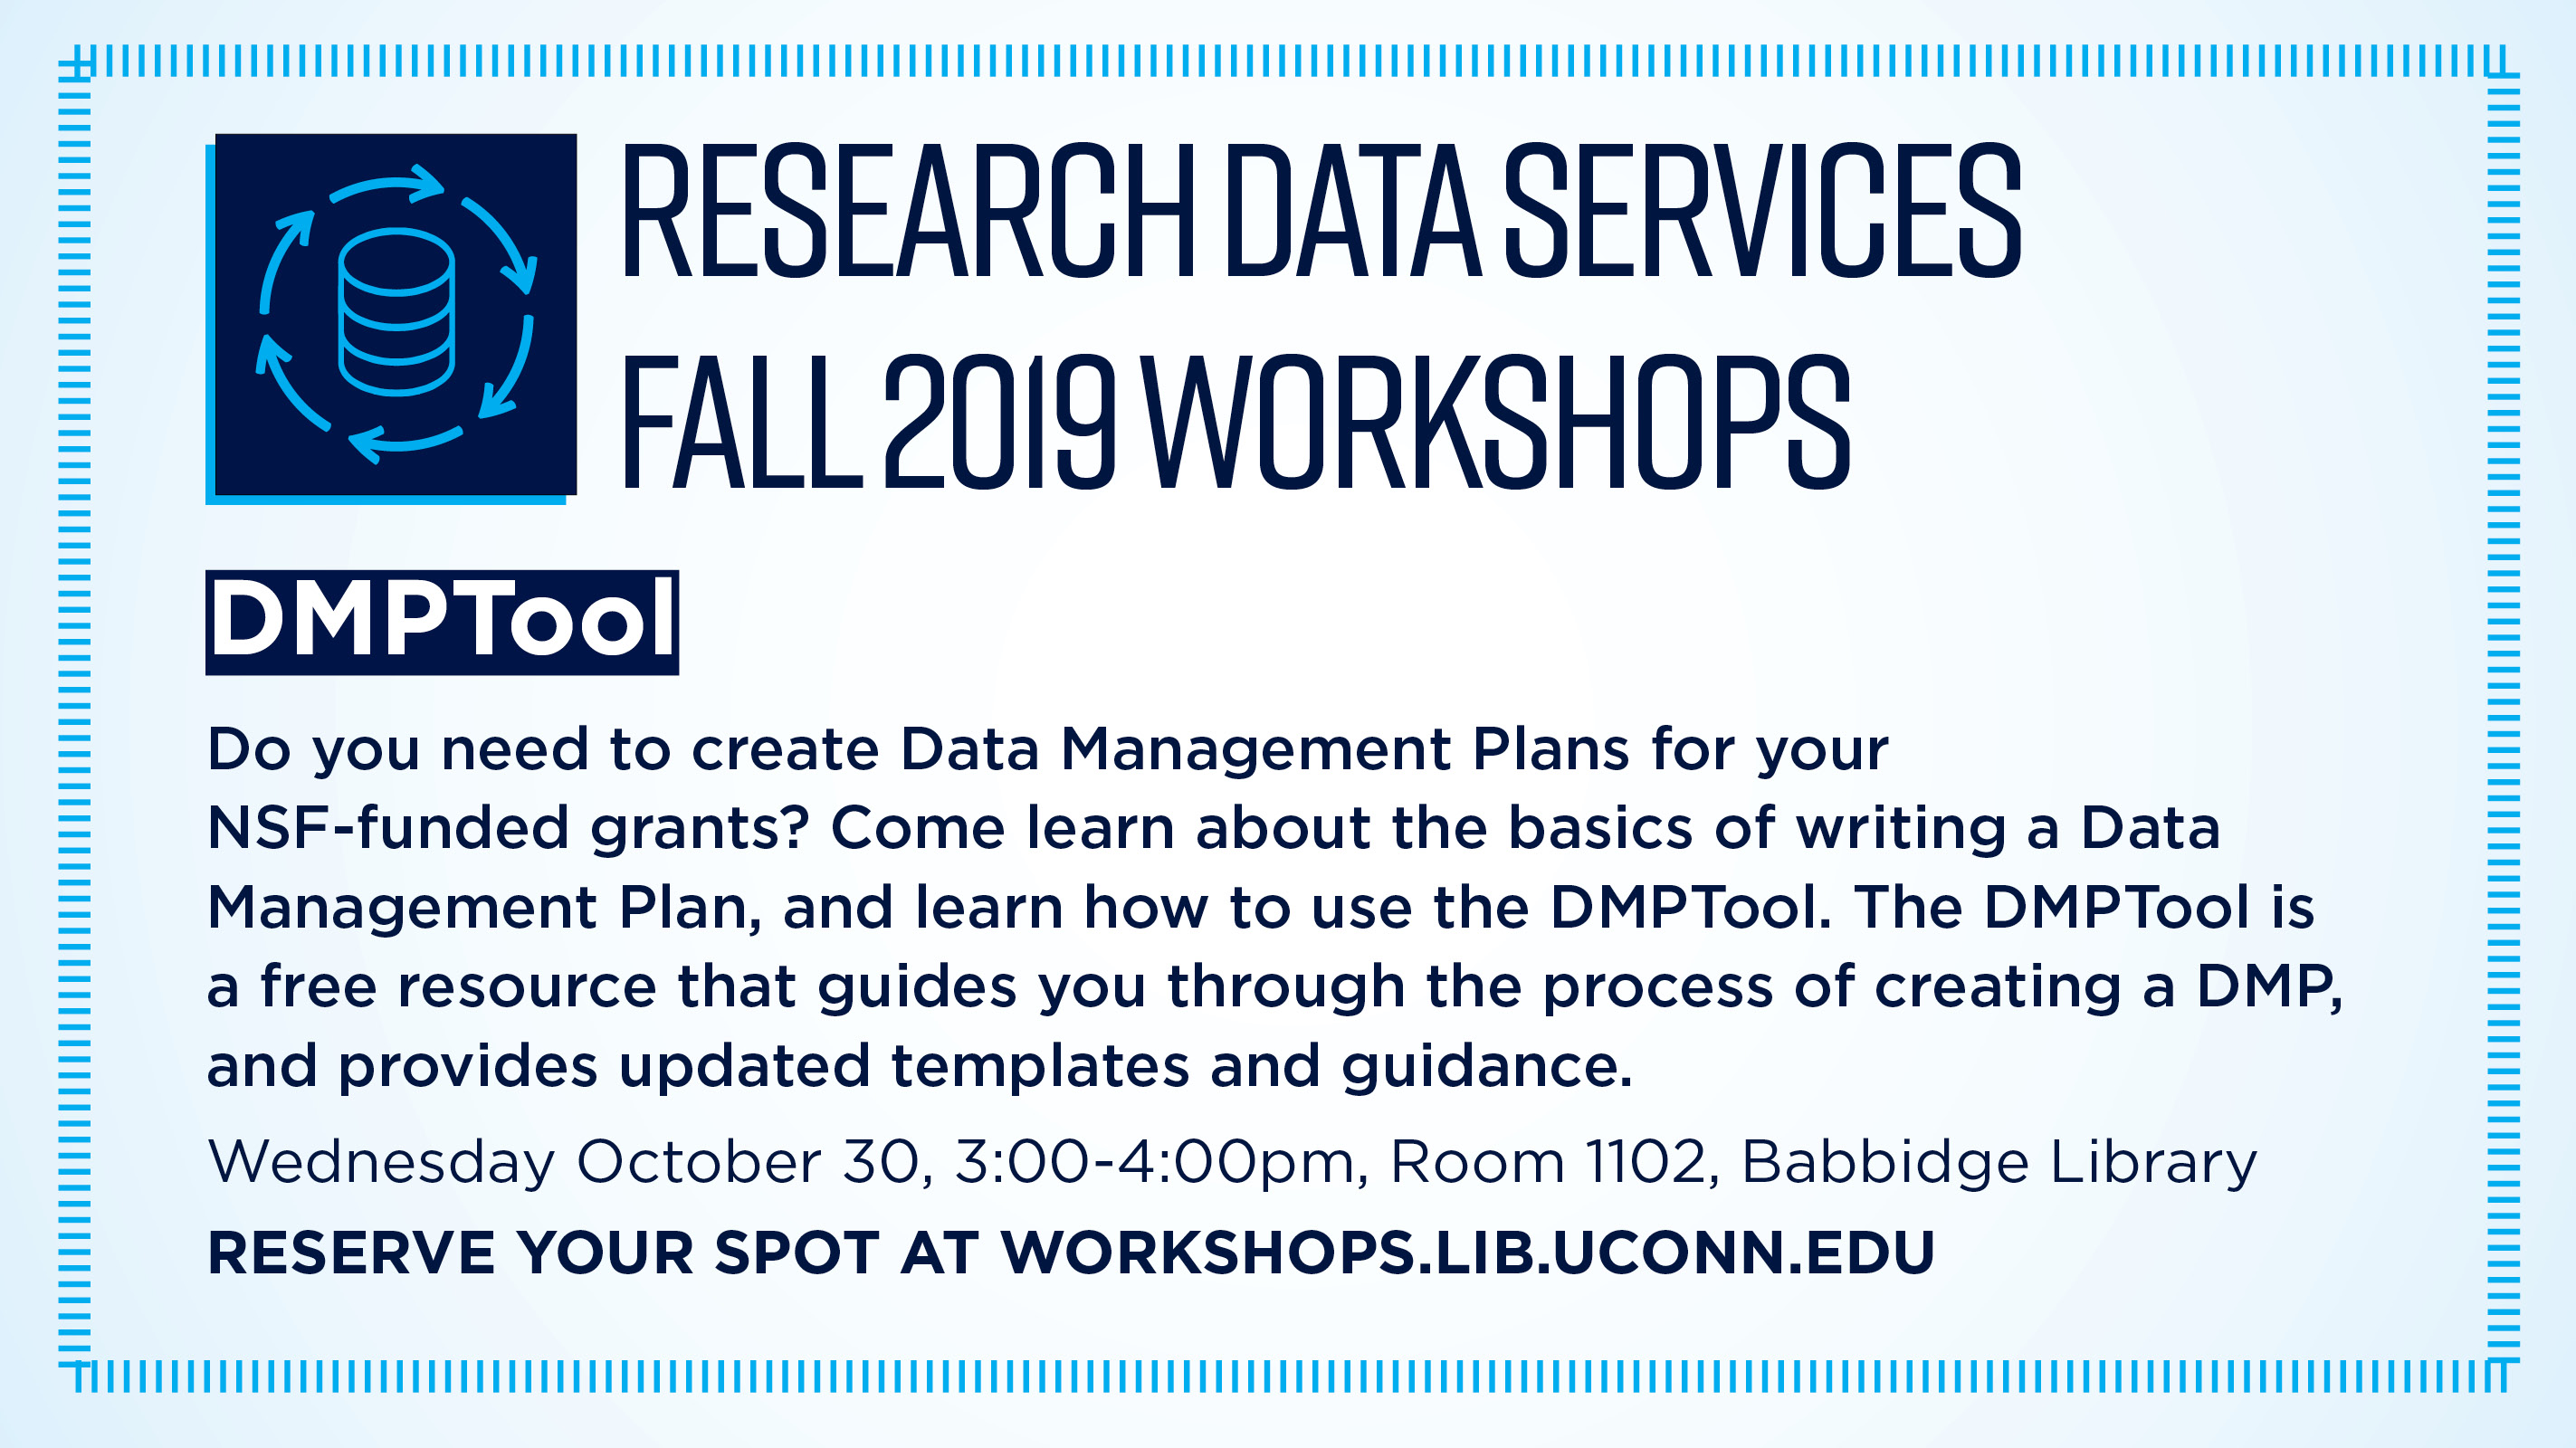 Research Data Services Fall 2019 Workshops IEEE Digital Library Come learn about electrical engineering and computer science resources from IEEE, The Institute of Electrical and Electronics Engineers. Thursday, October 31st, 12:00-1:00pm Room 1101, Babbidge Library Reserve your spot at workshops.lib.uconn.edu